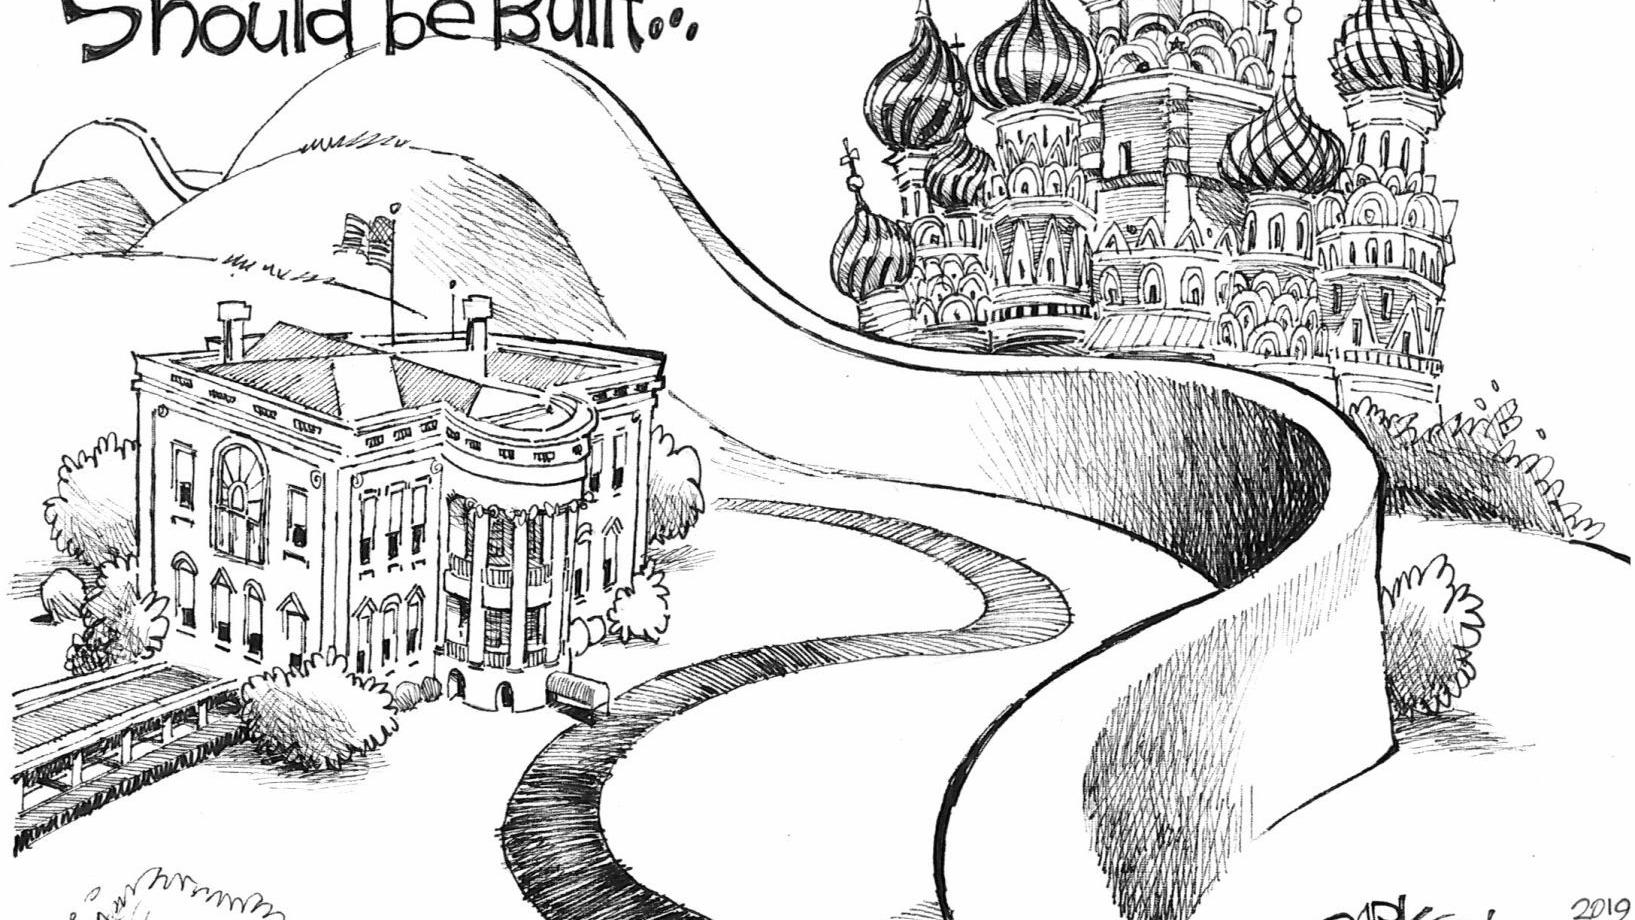 A wall everyone can support, in John Darkow's latest political cartoon